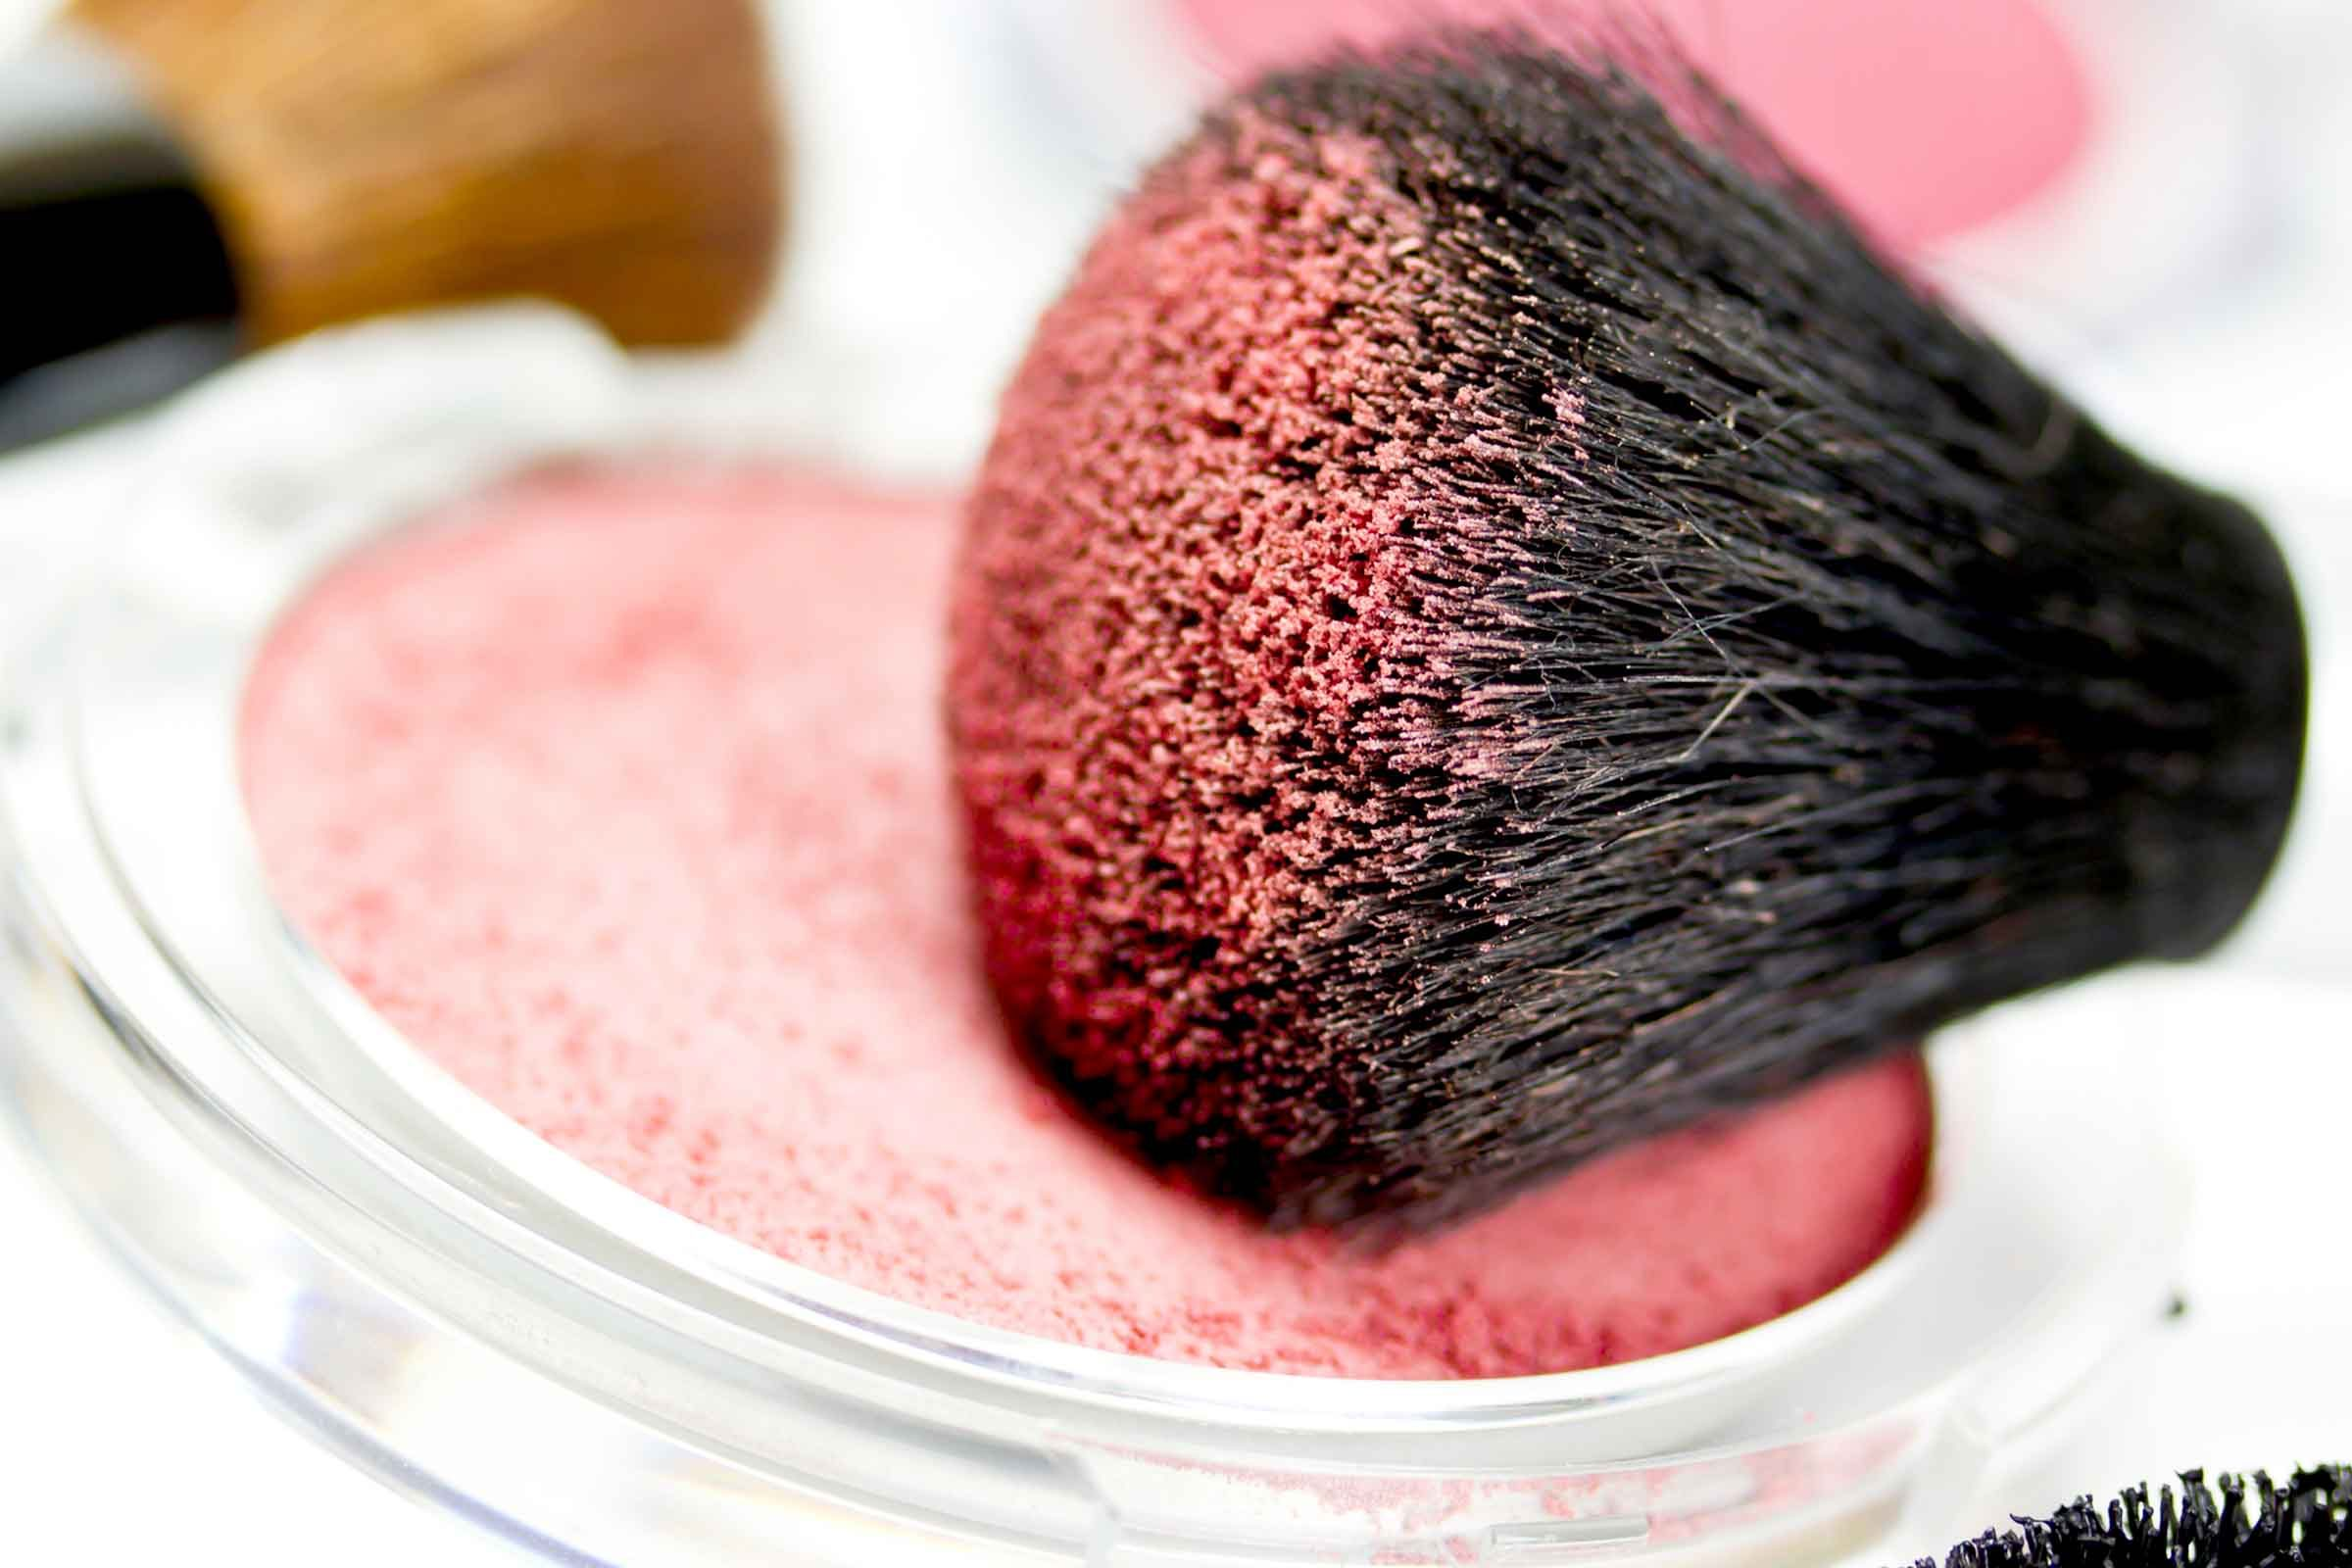 Makeup for Dry Skin: Mistakes That Make Skin Look Dry | Reader\'s Digest